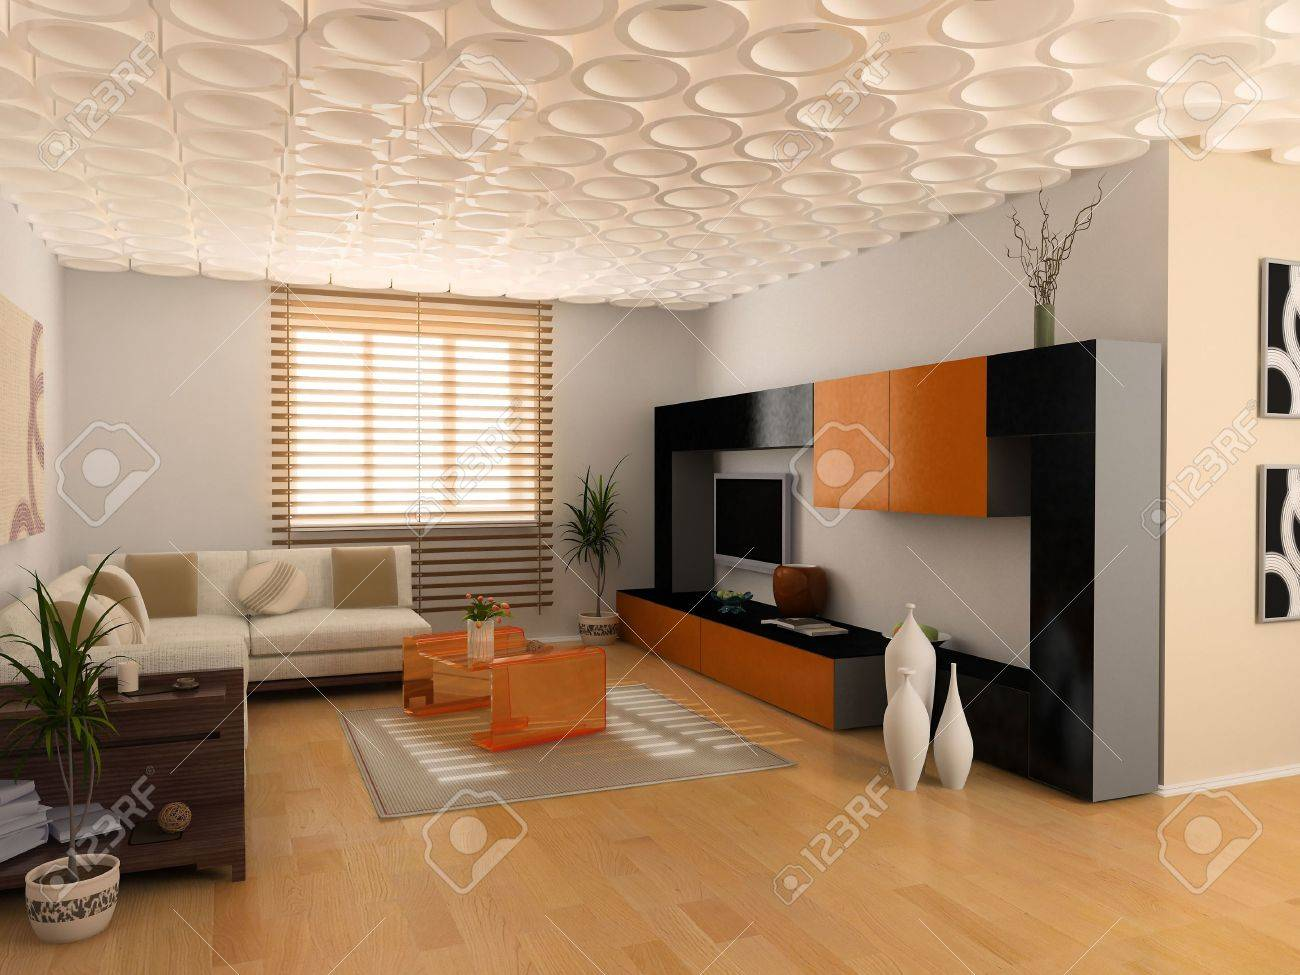 Modern Interior Design Private Apartment 3d Rendering Stock Photo